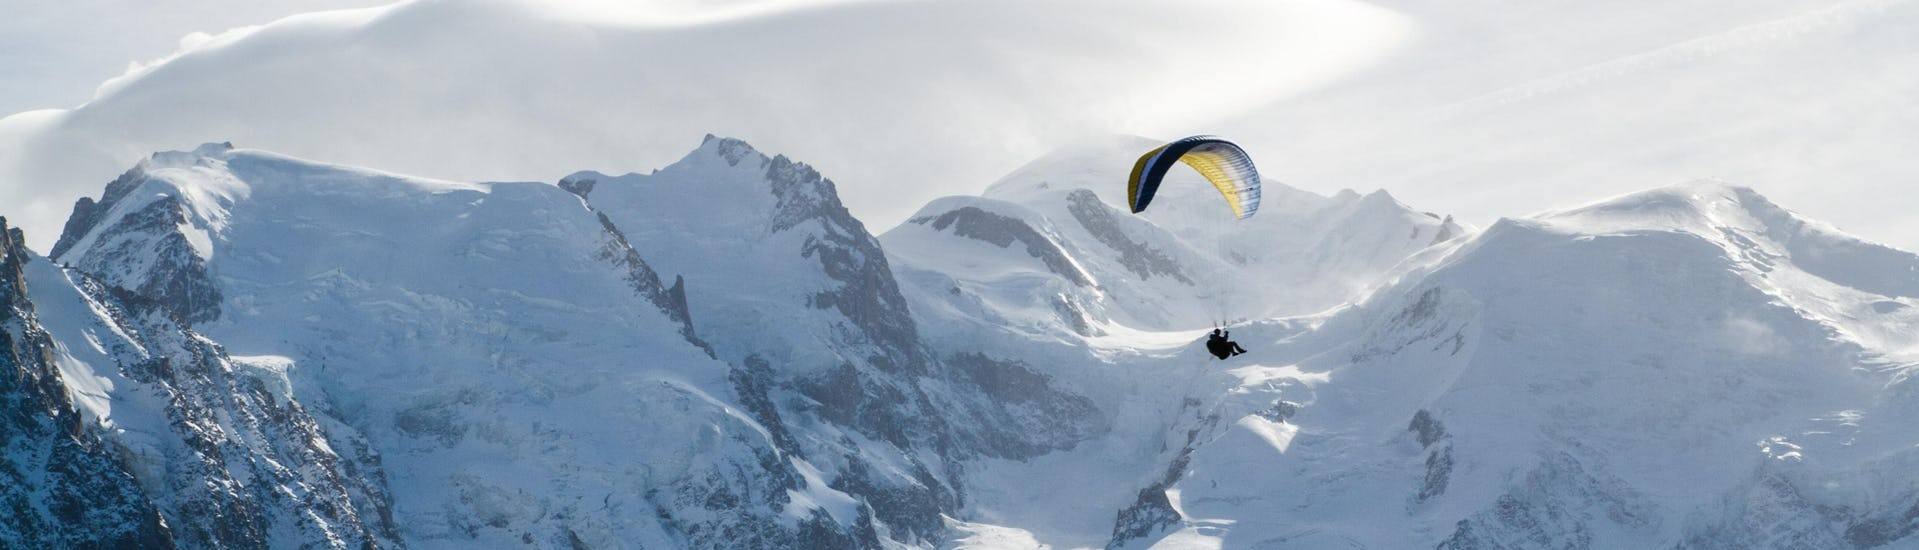 A person is doing a paragliding flight in the Chamonix valley with the snowy mountains in the background.